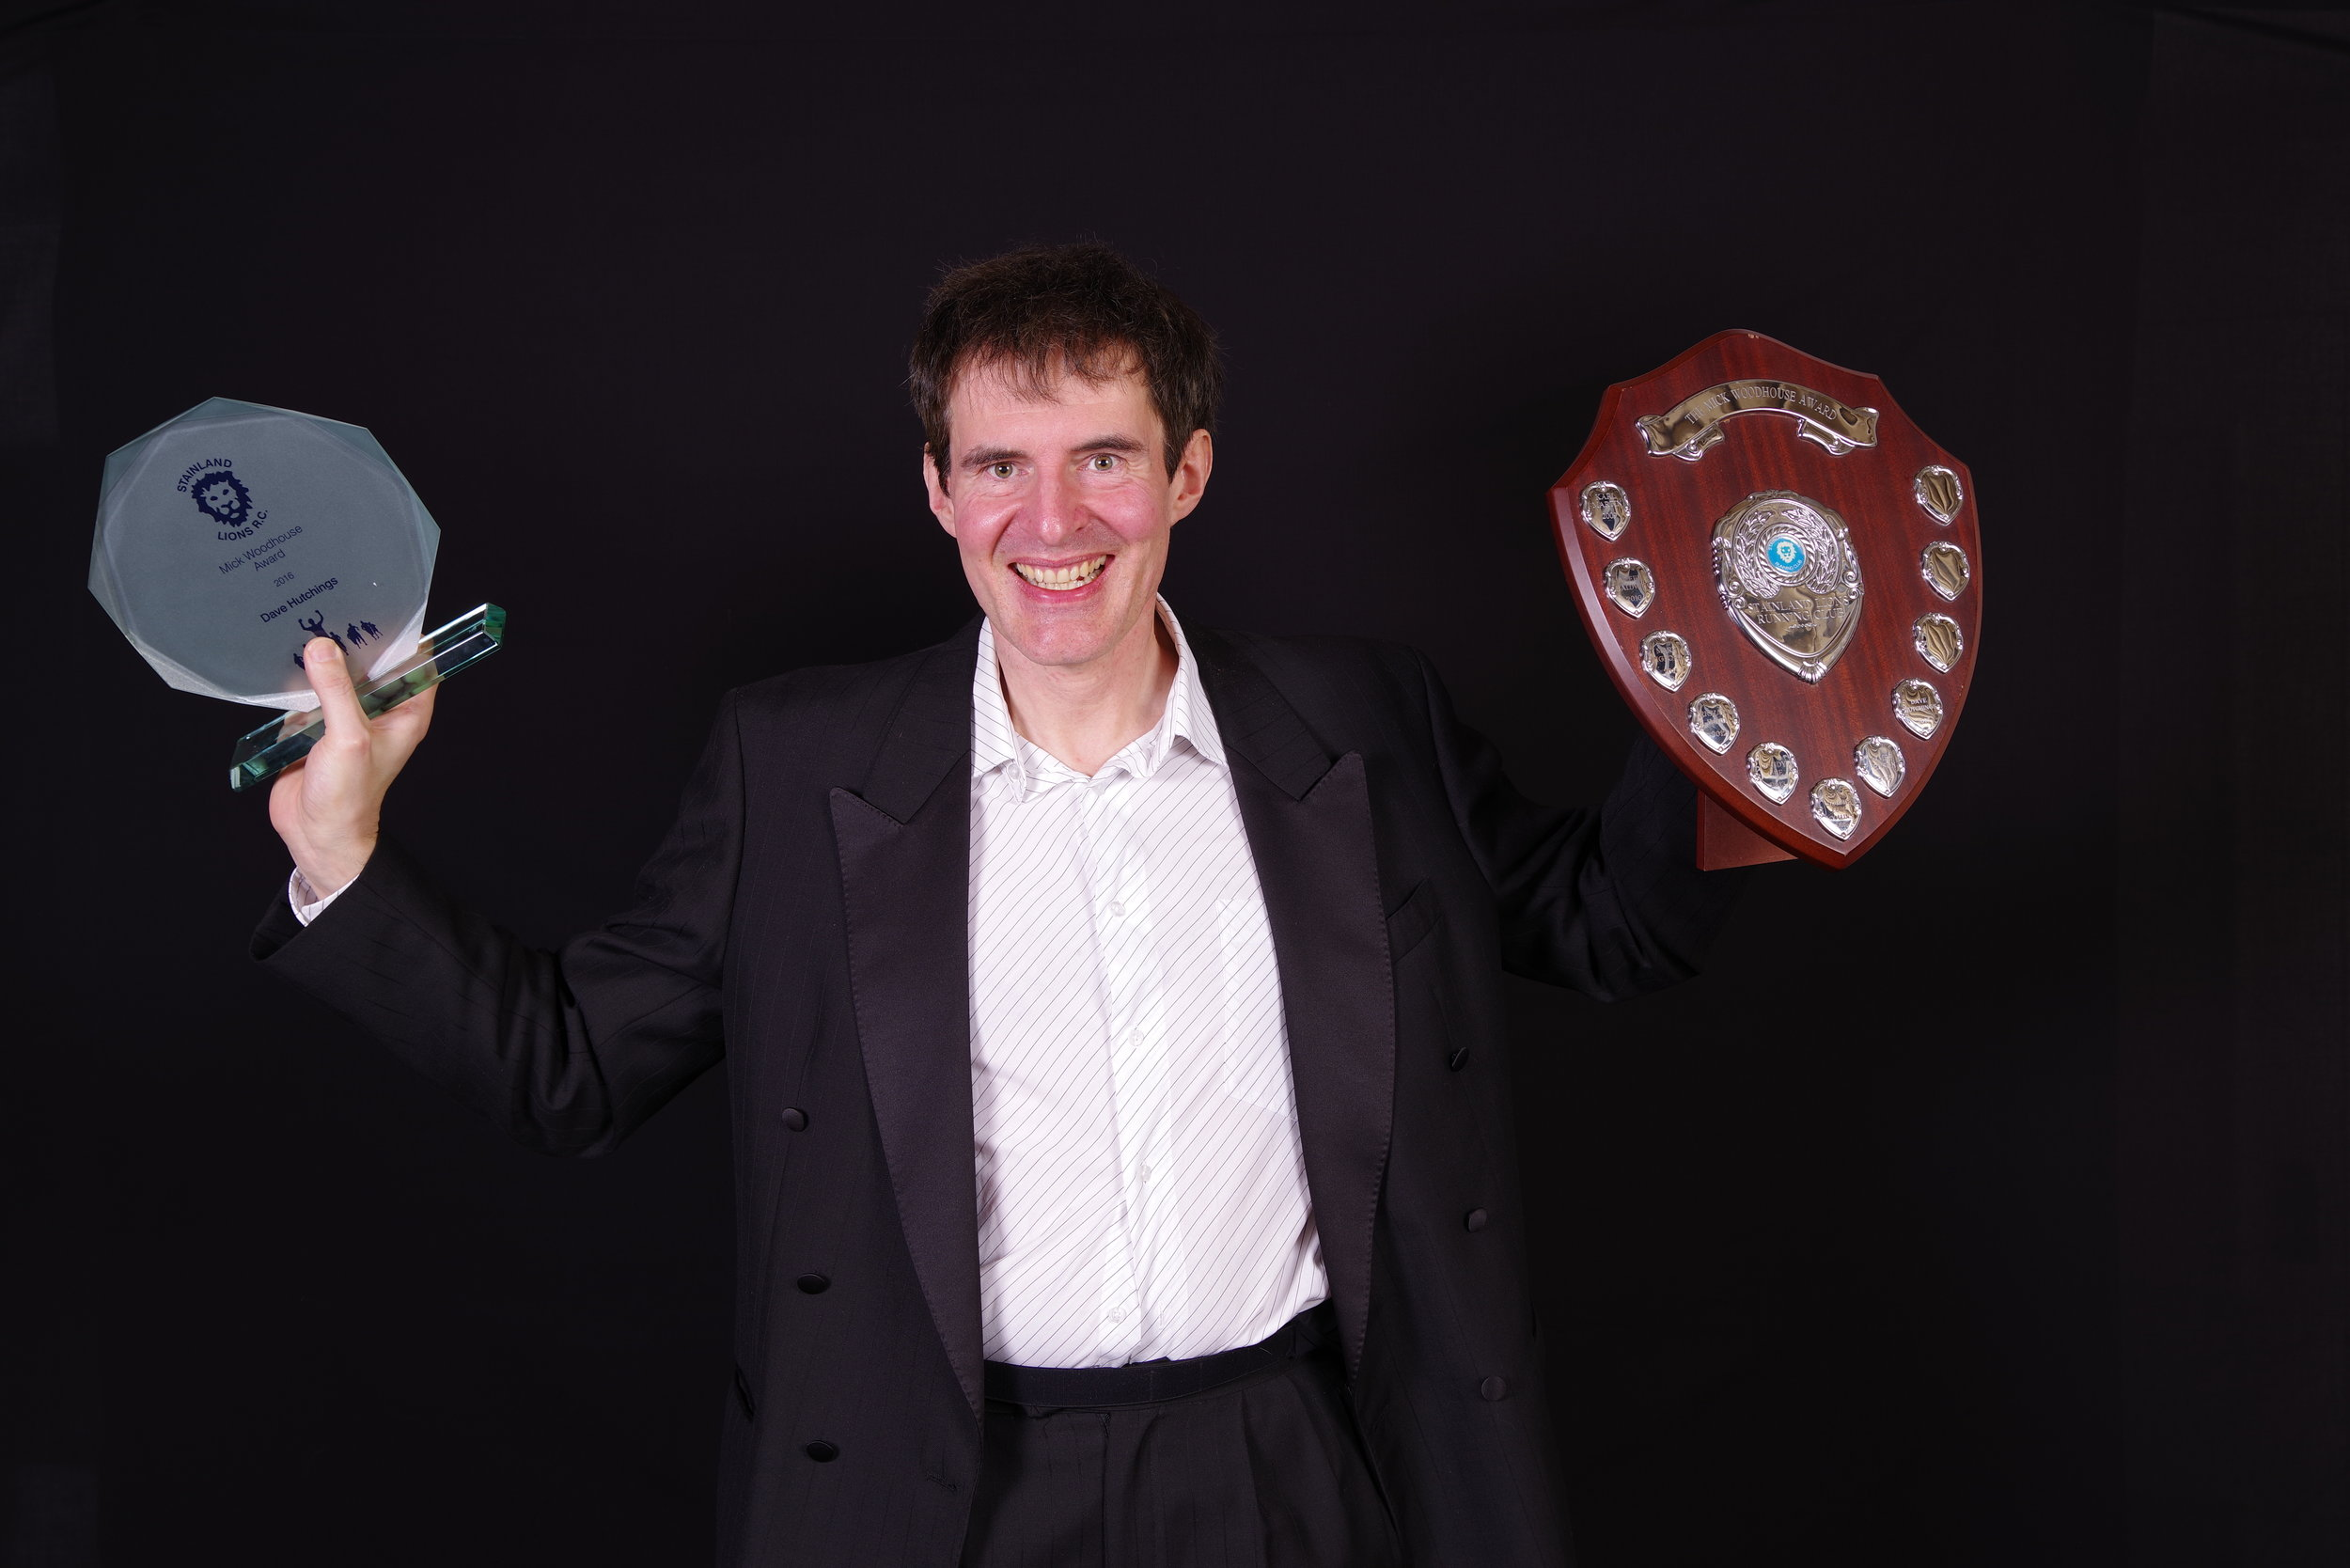 Dave Hutchings - The Mick Woodhouse Award